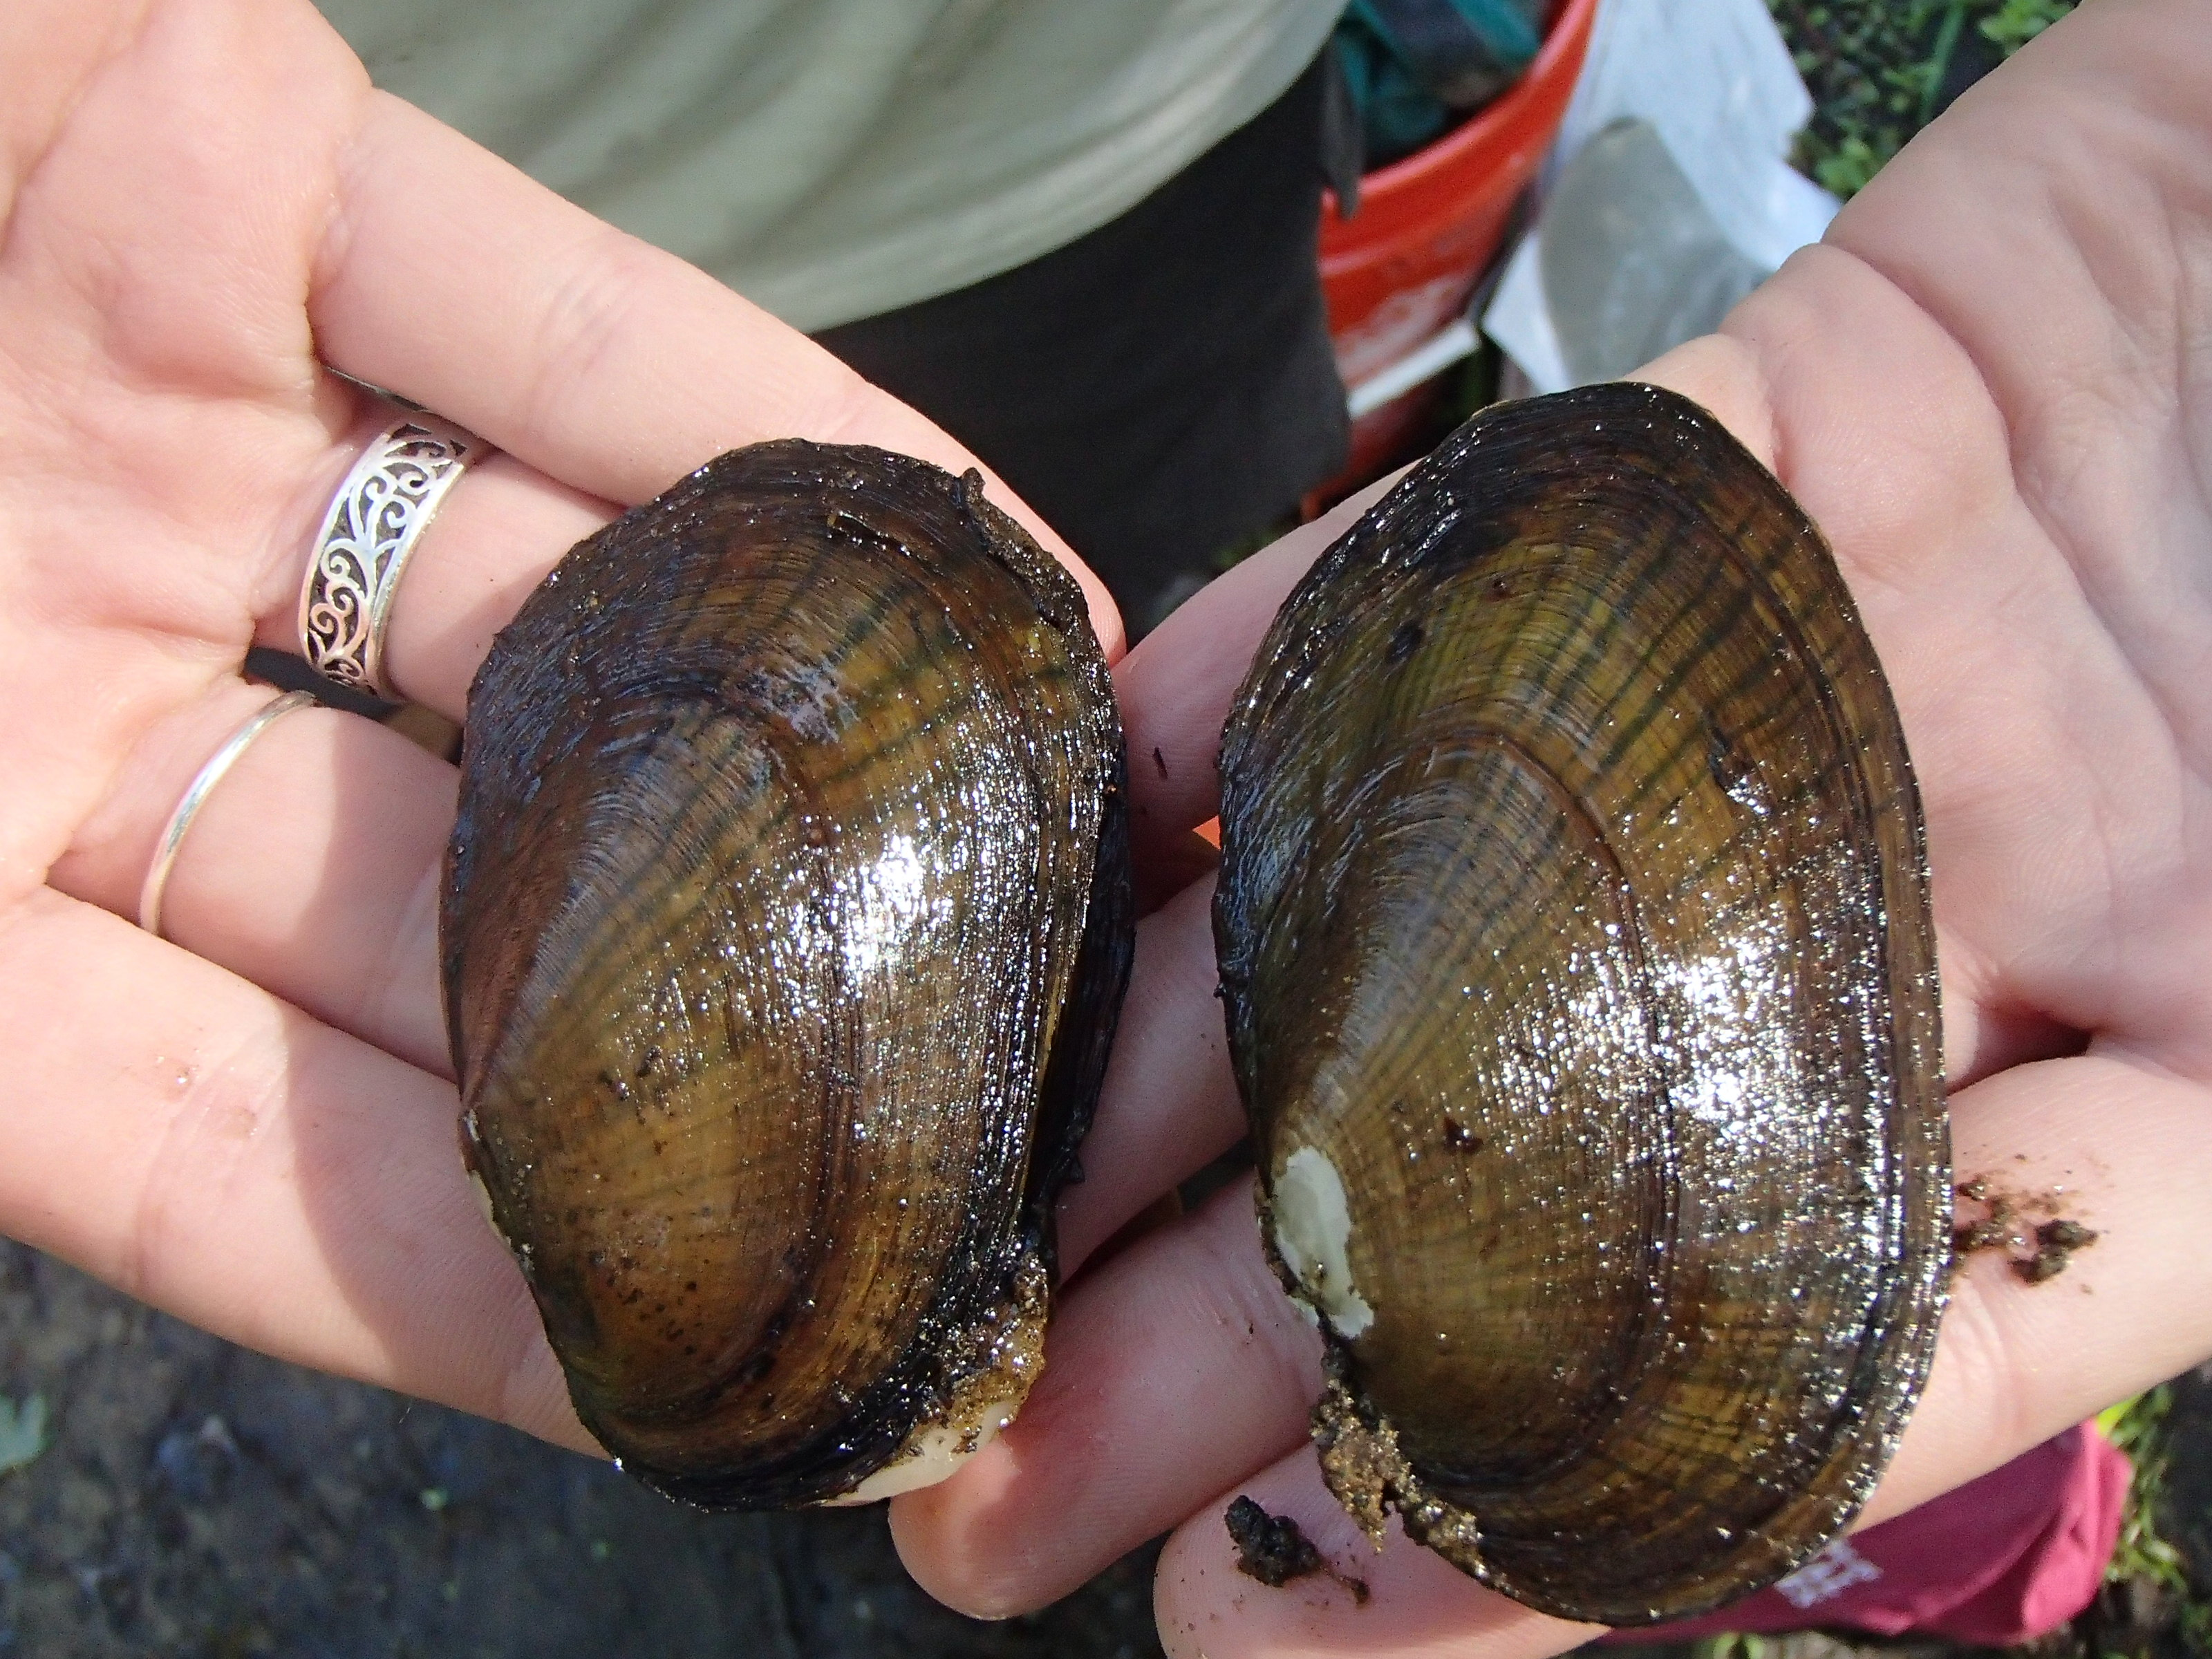 Eastern pondmussel, a species of special concern in MA